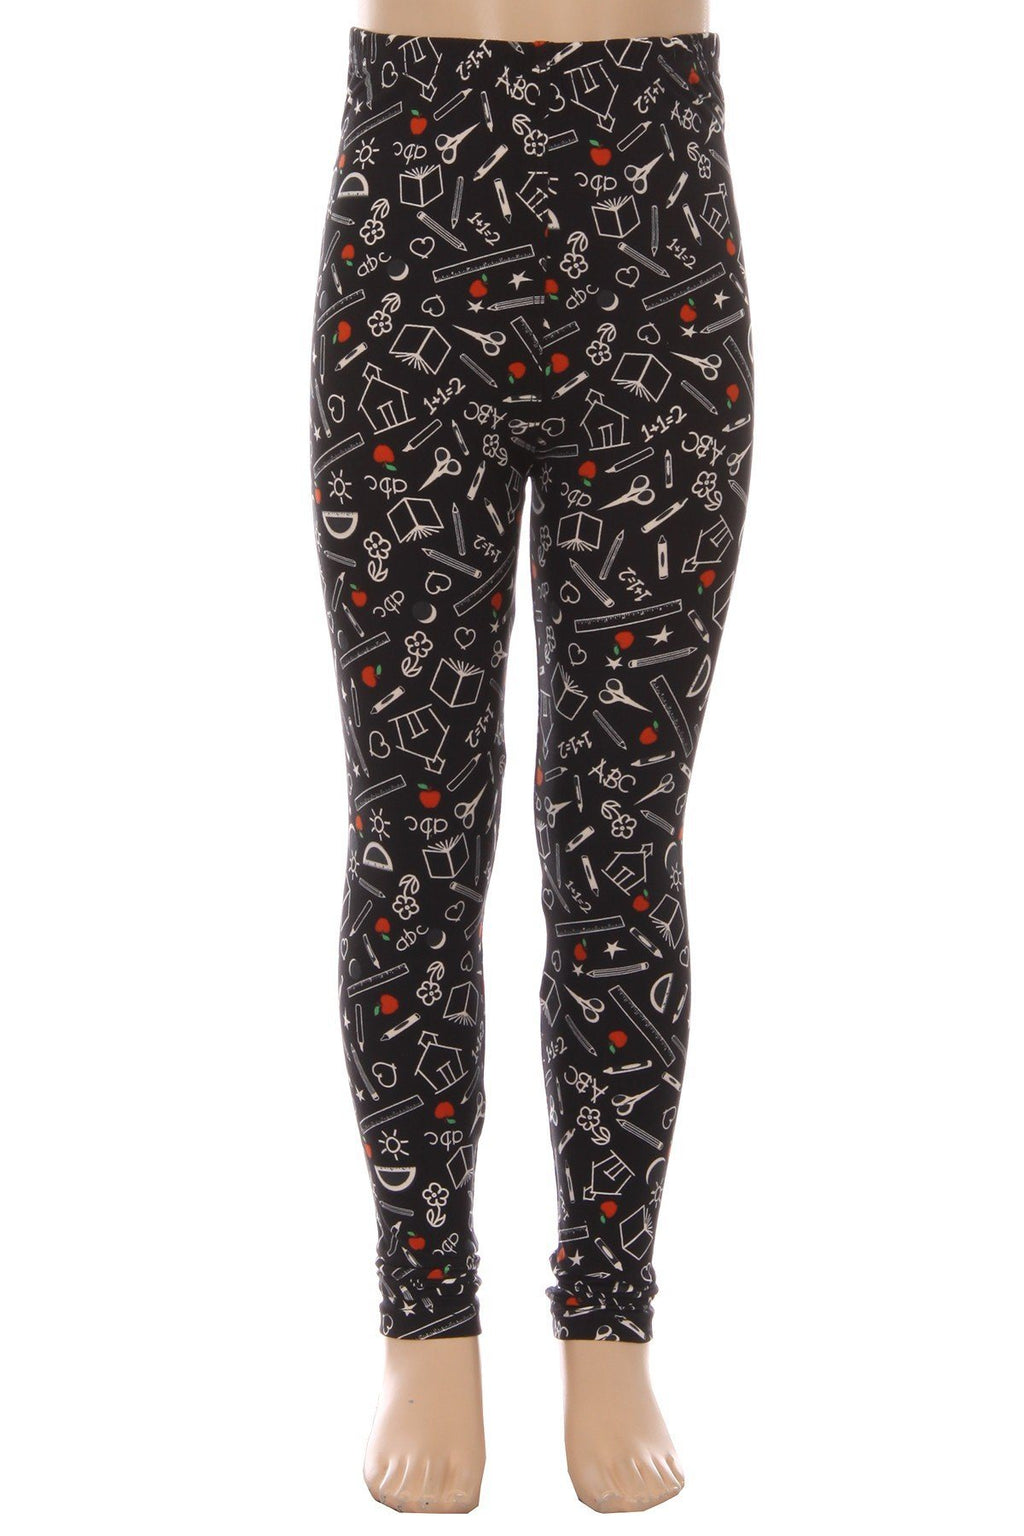 Girl's School House ABC Printed Leggings Black/White: S/L - MomMe and More